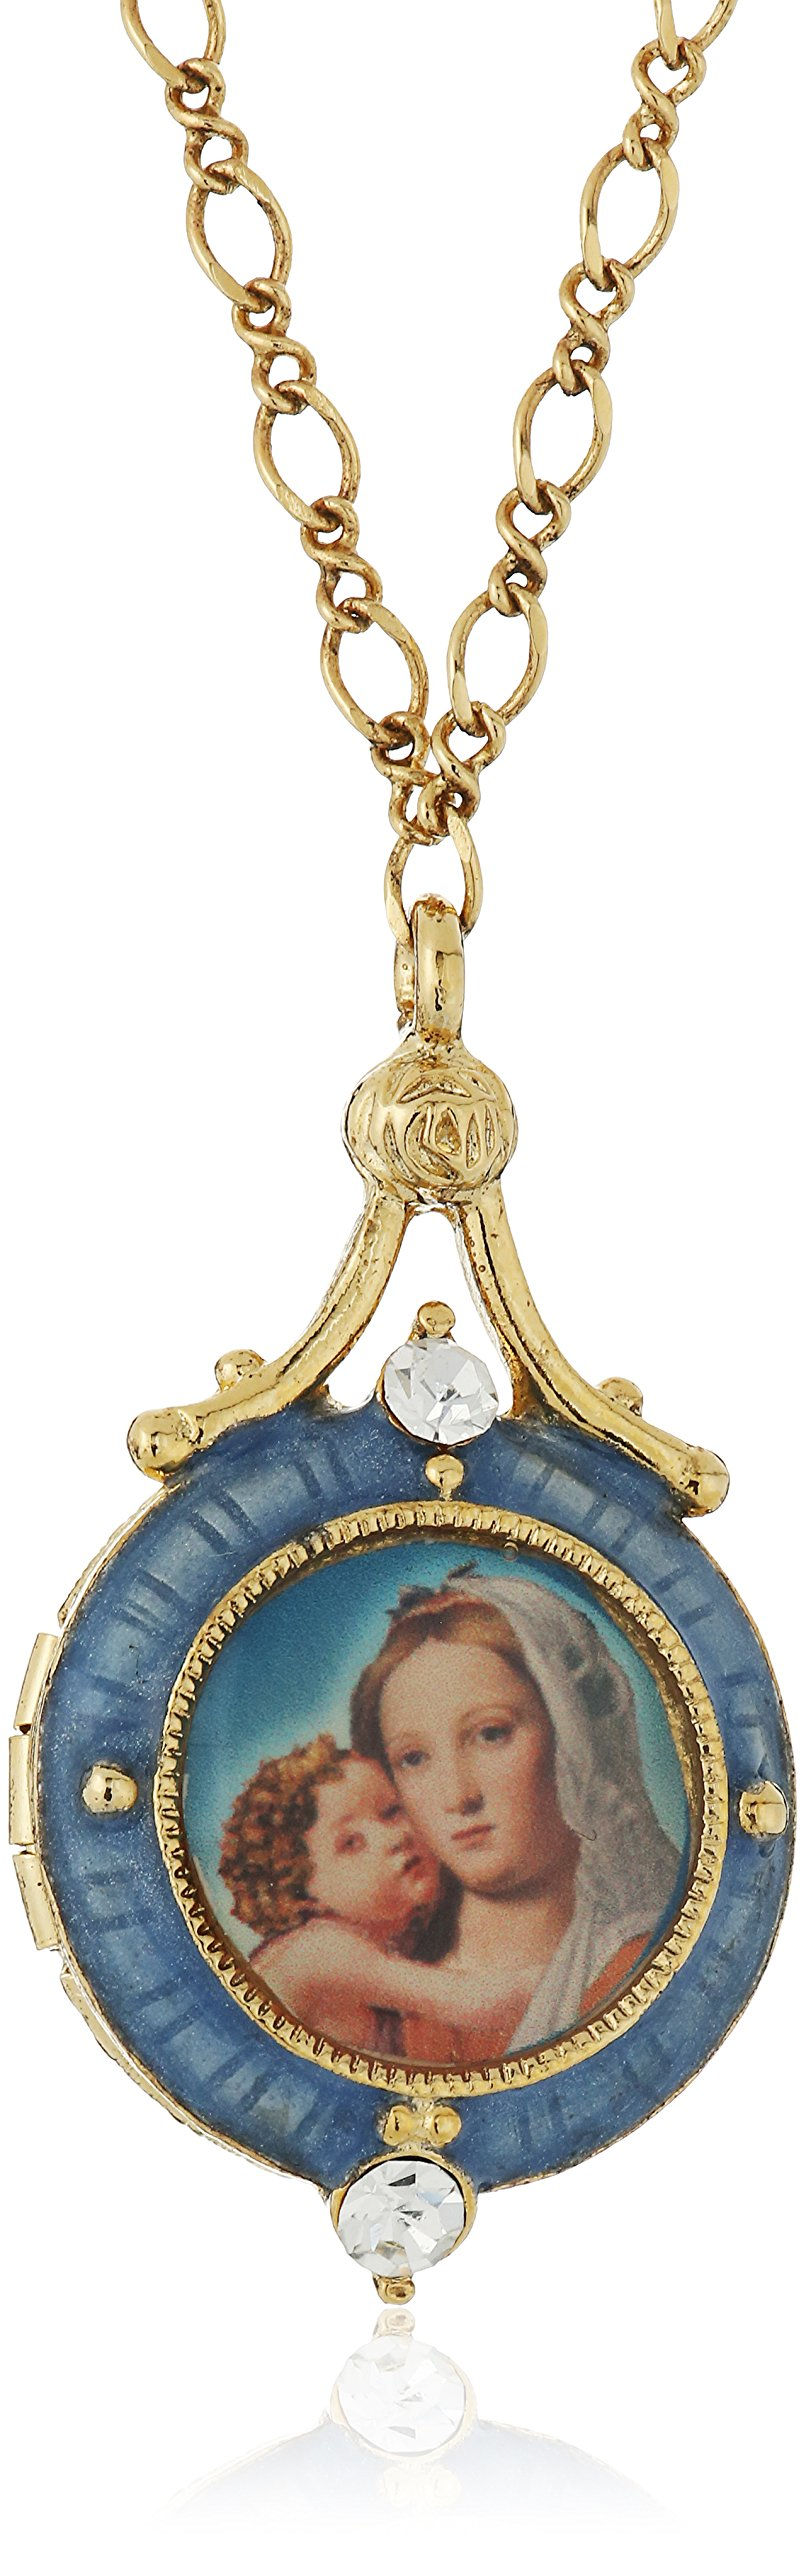 Symbols of Faith Inspirations 14k Gold-Dipped Blue Enamel Mary and Child Locket Necklace, 17.5''